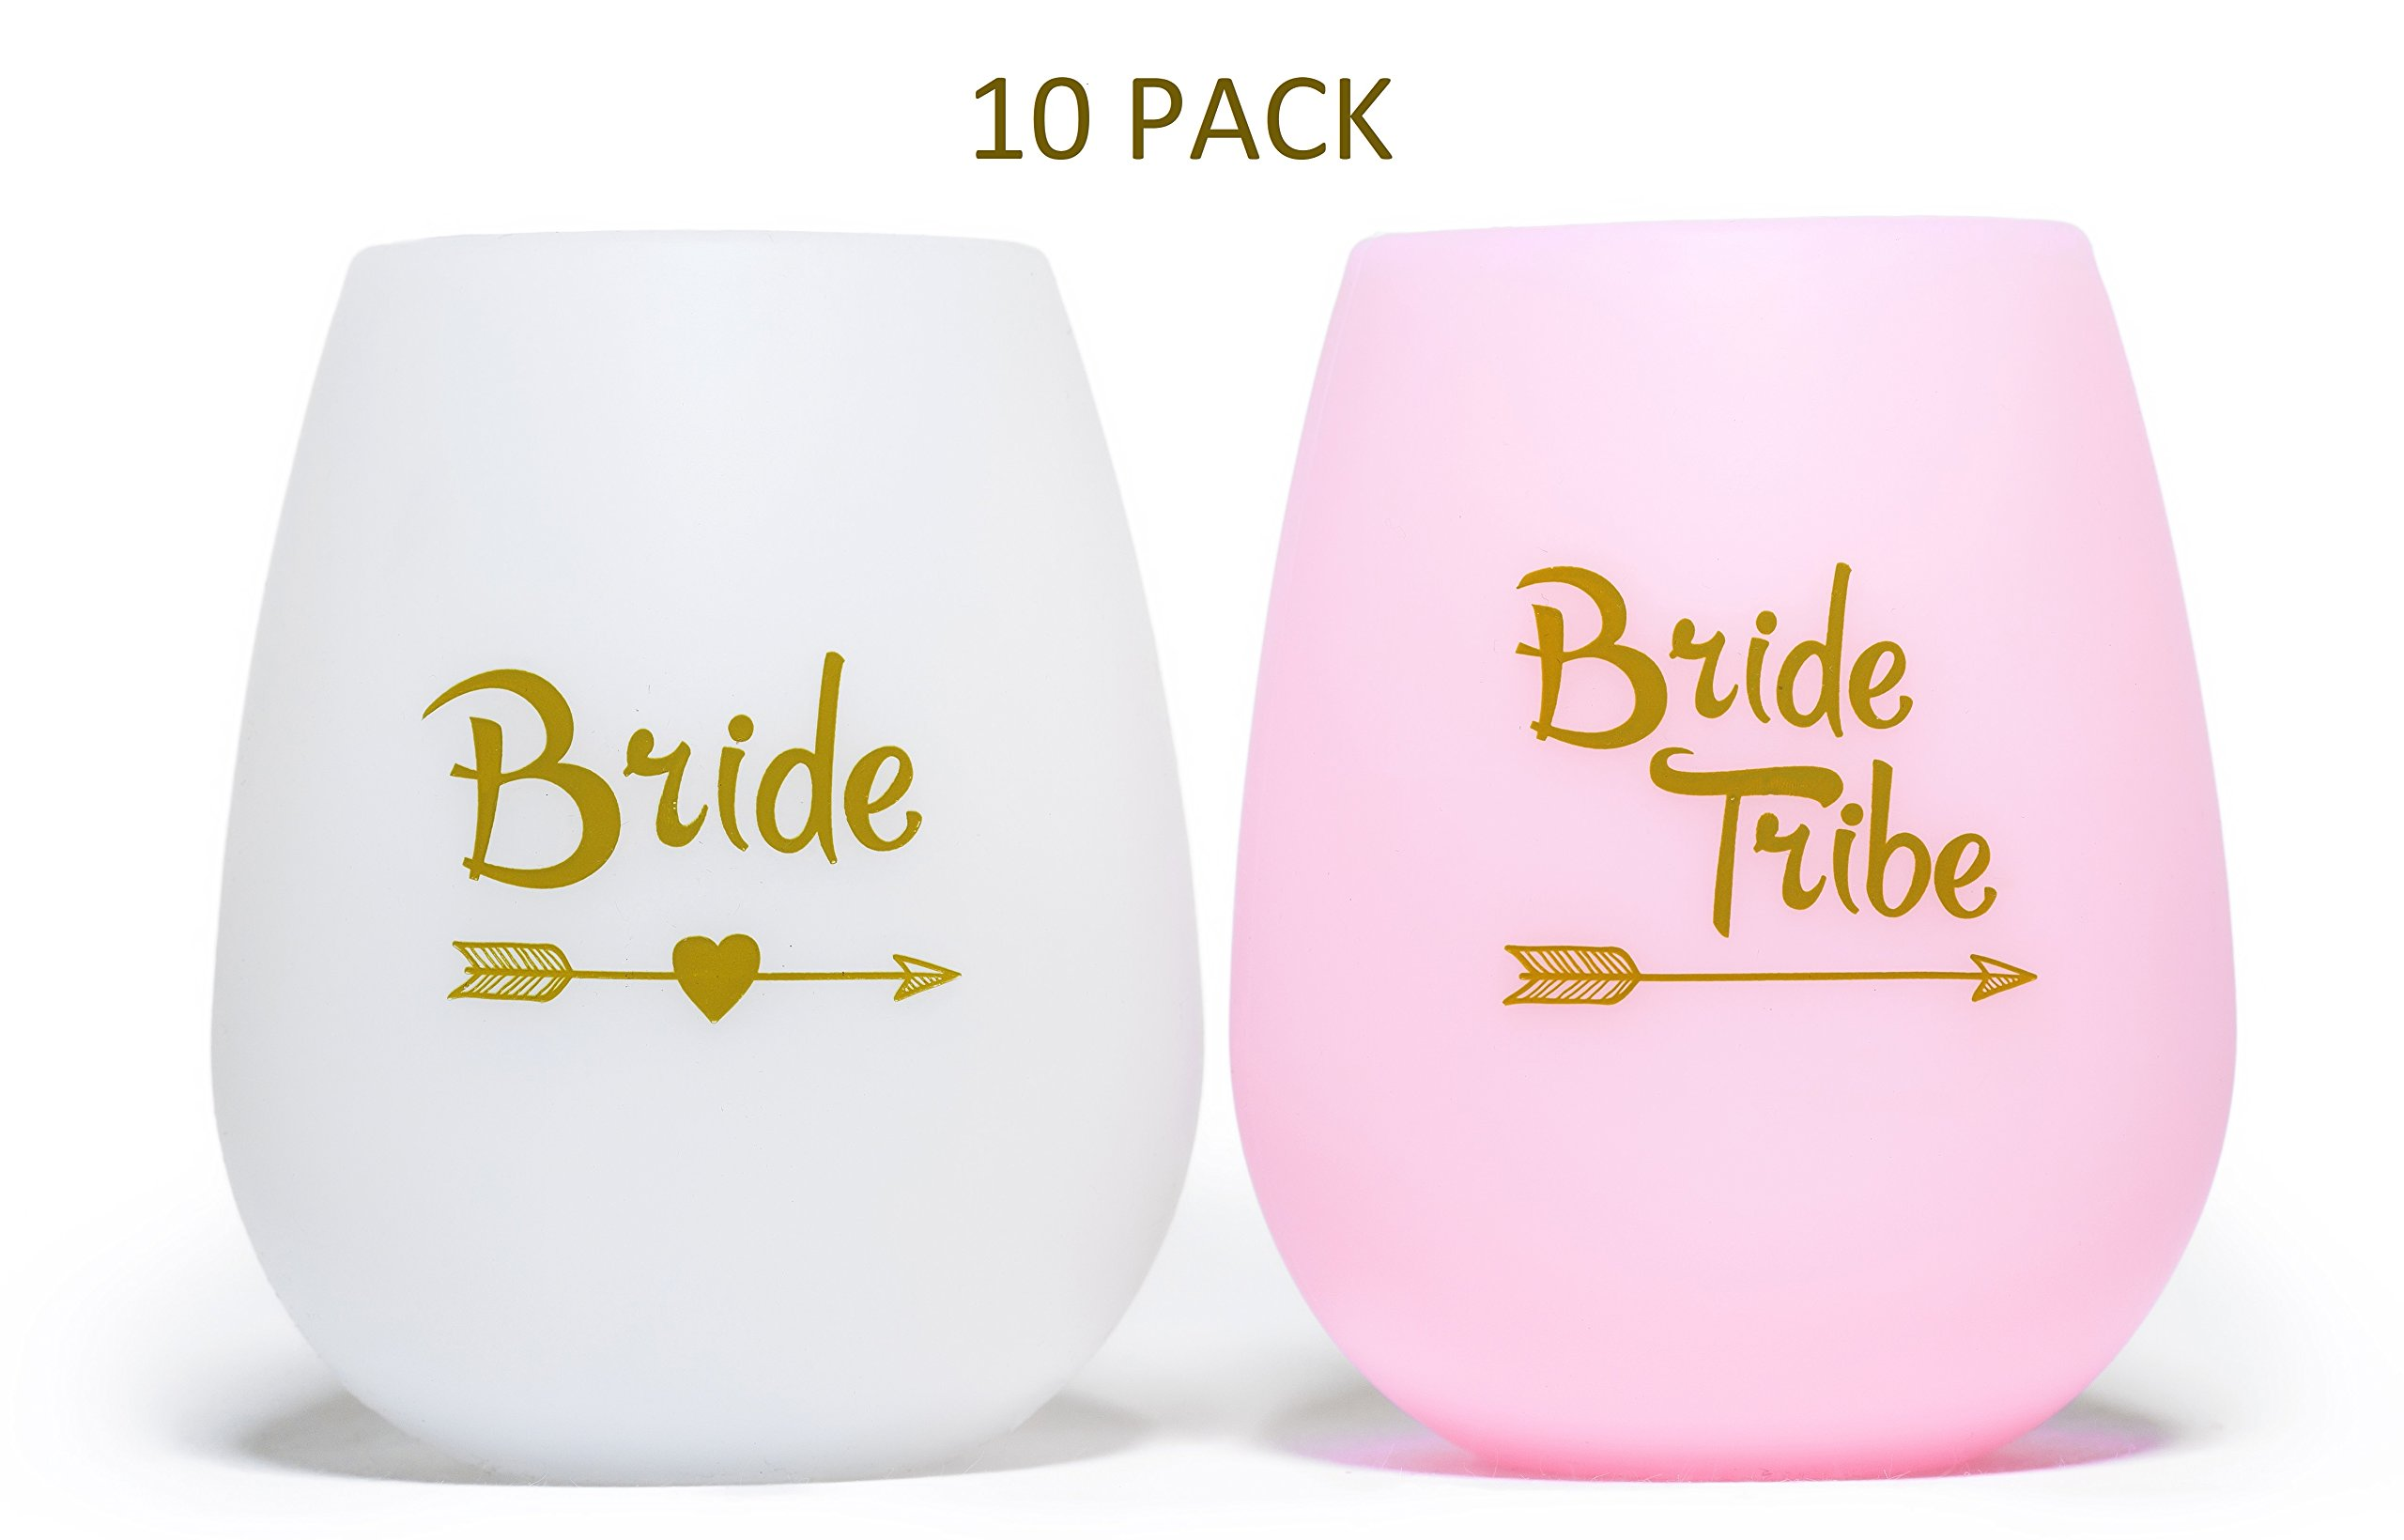 VINOVITA Silicone Wine Bride to Be & Tribe Team Party Glasses 10 Set   BPA Free, Unbreakable, Portable, Flexible, Reusable & Comfy   for Beer, Cocktails, Drinks & More   Bonus 12 Temporary Tattoos